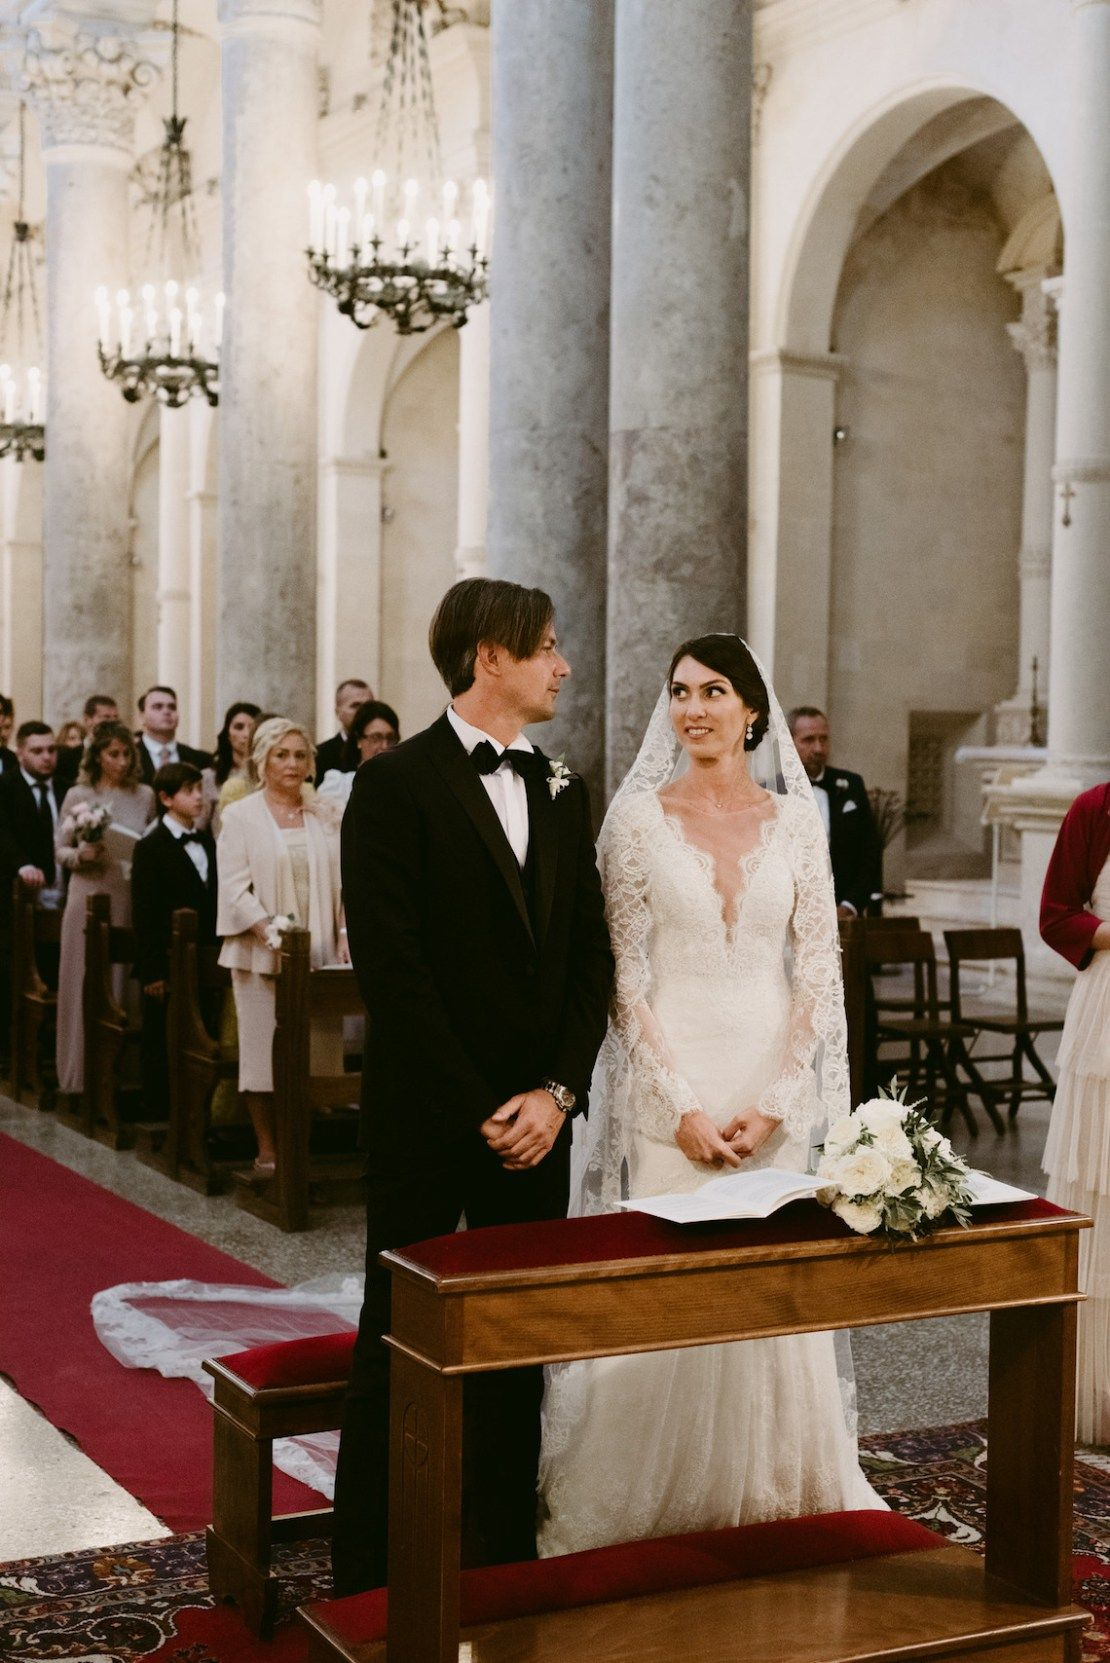 This luxurious cathedral wedding will make you dream of